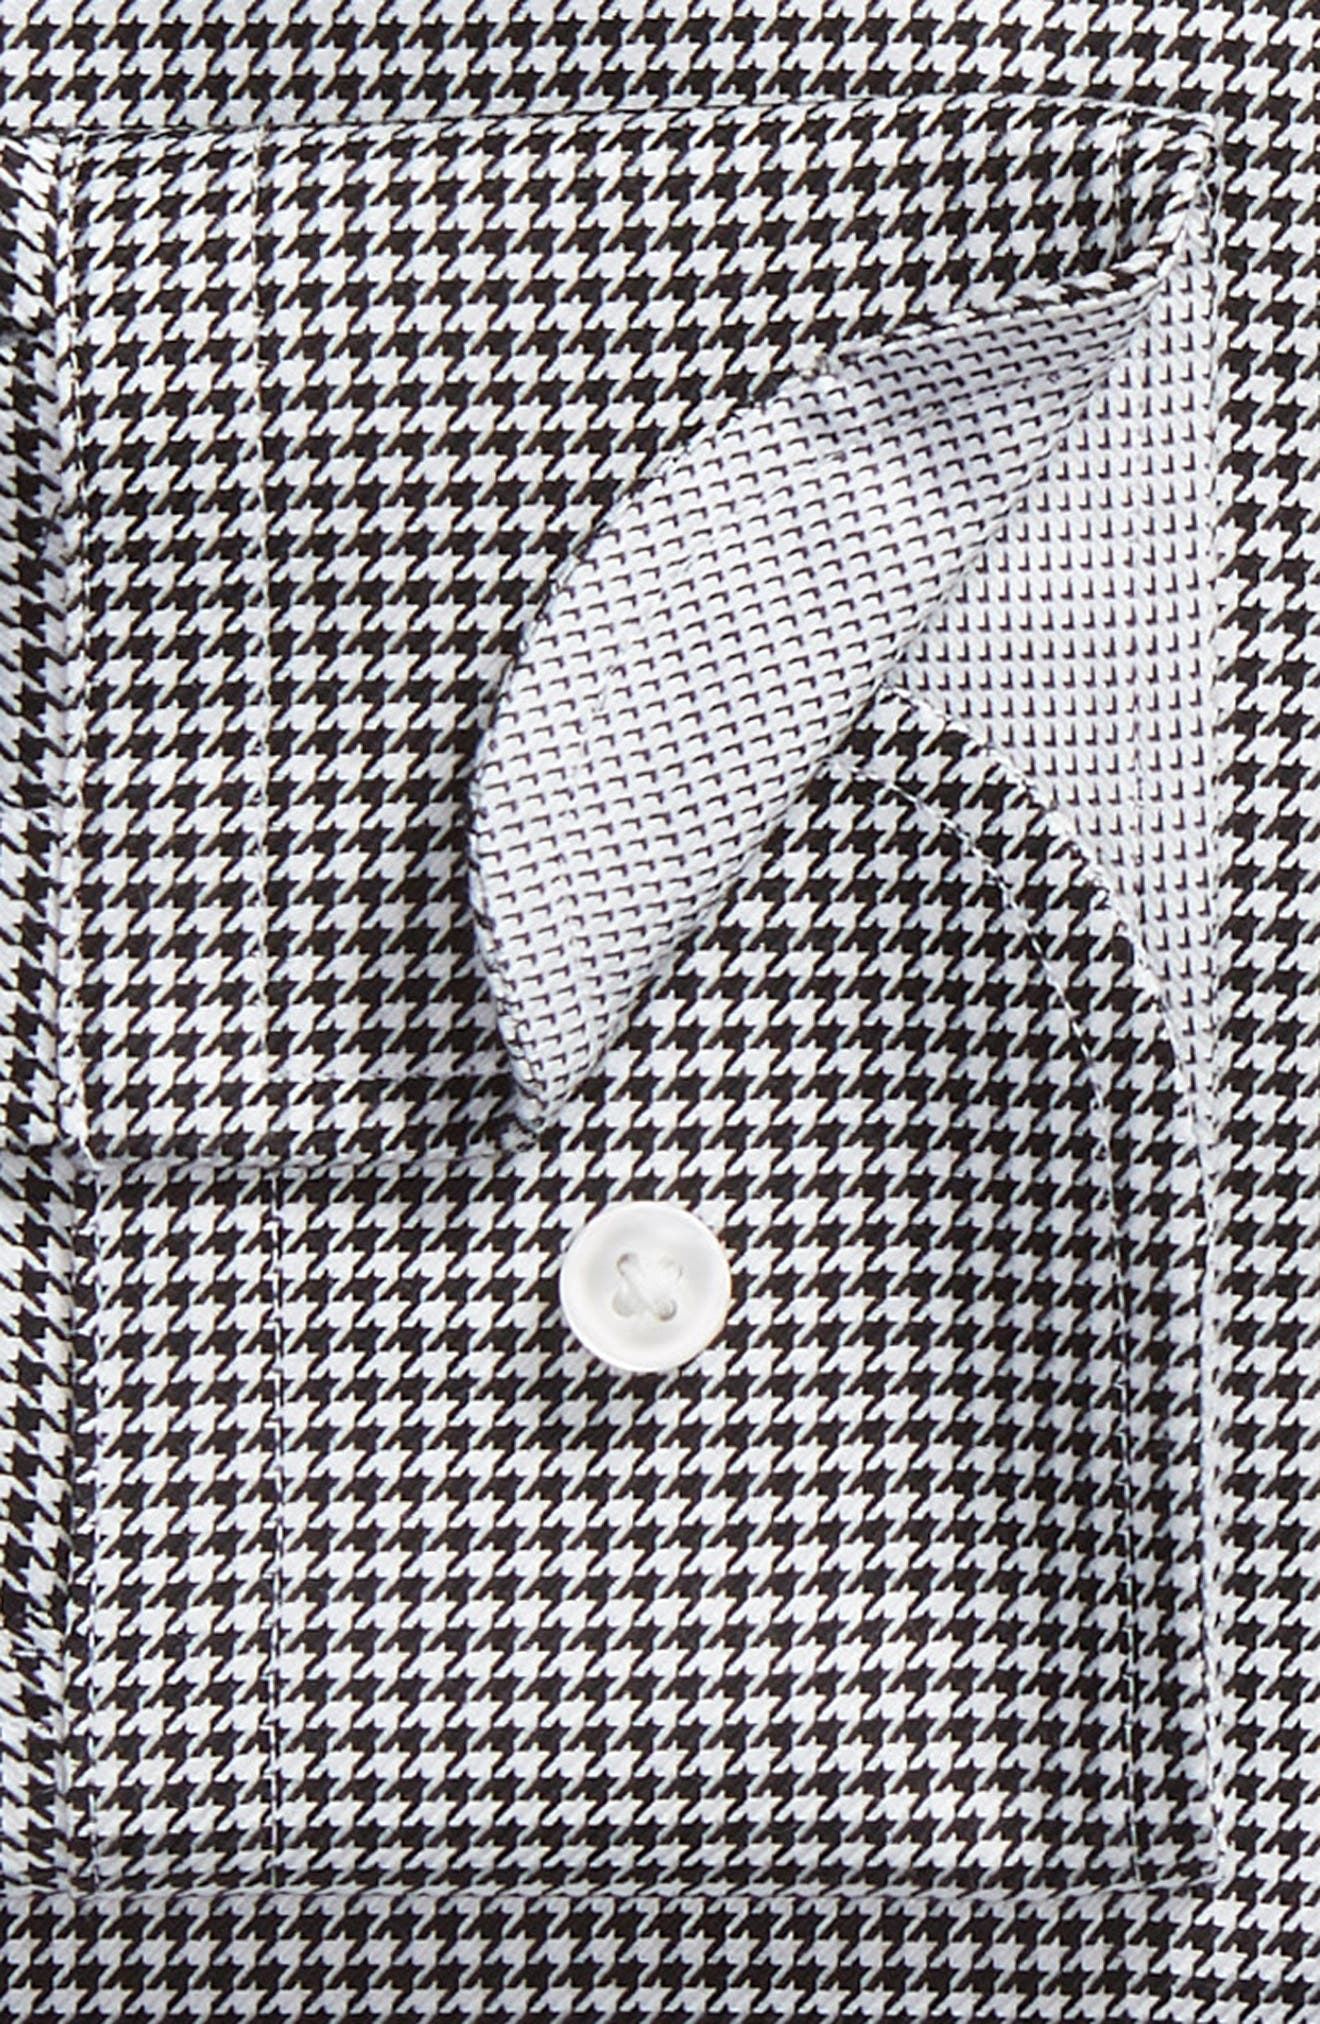 Jason Slim Fit Houndstooth Dress Shirt,                             Alternate thumbnail 6, color,                             BLACK